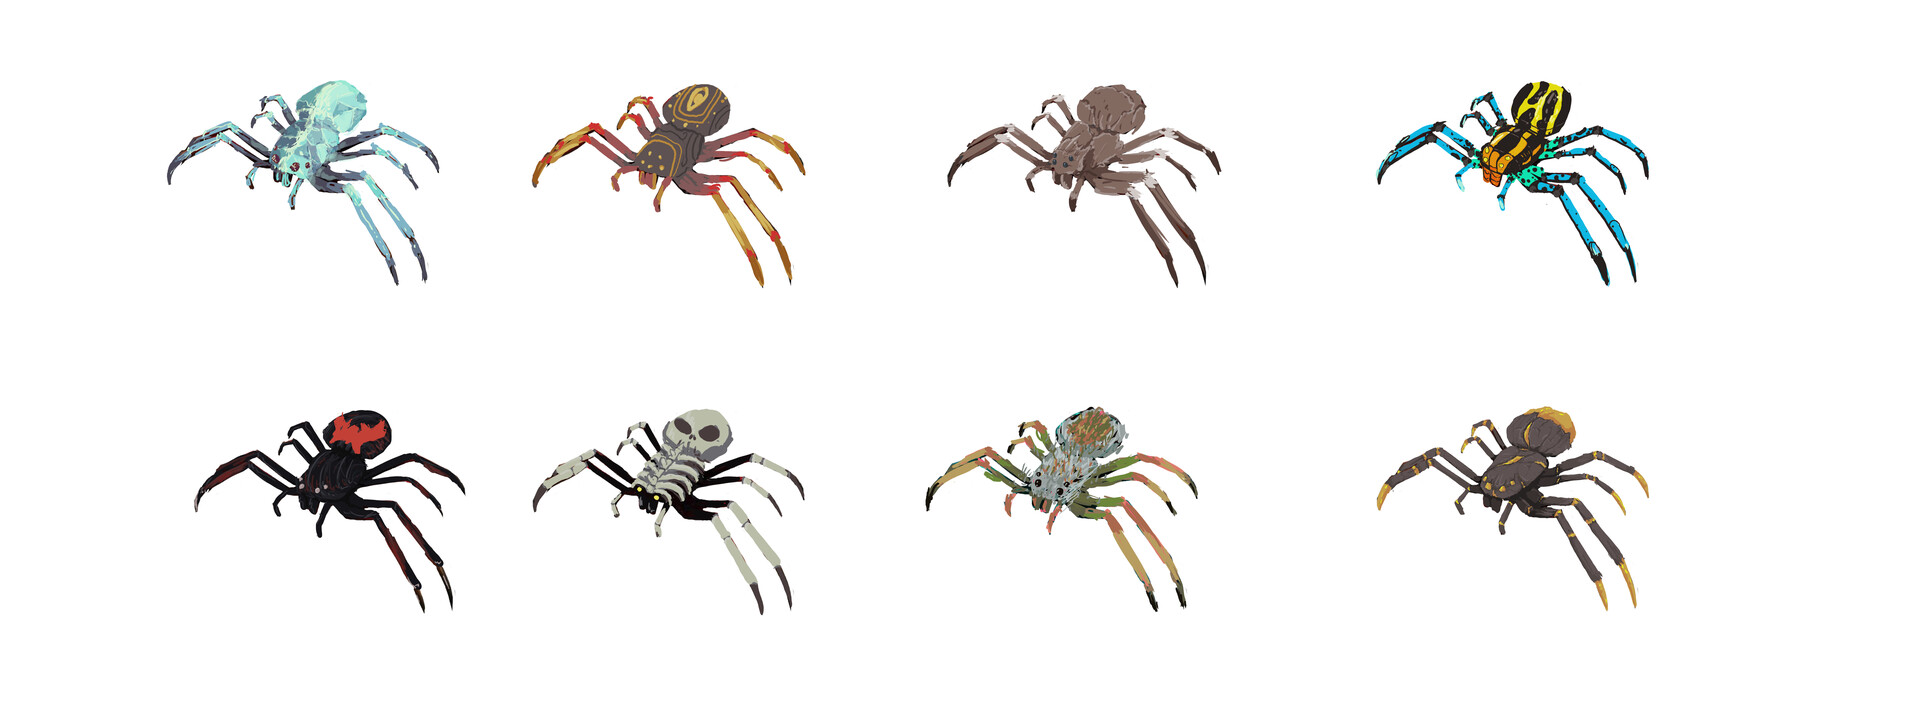 Spider Concepts